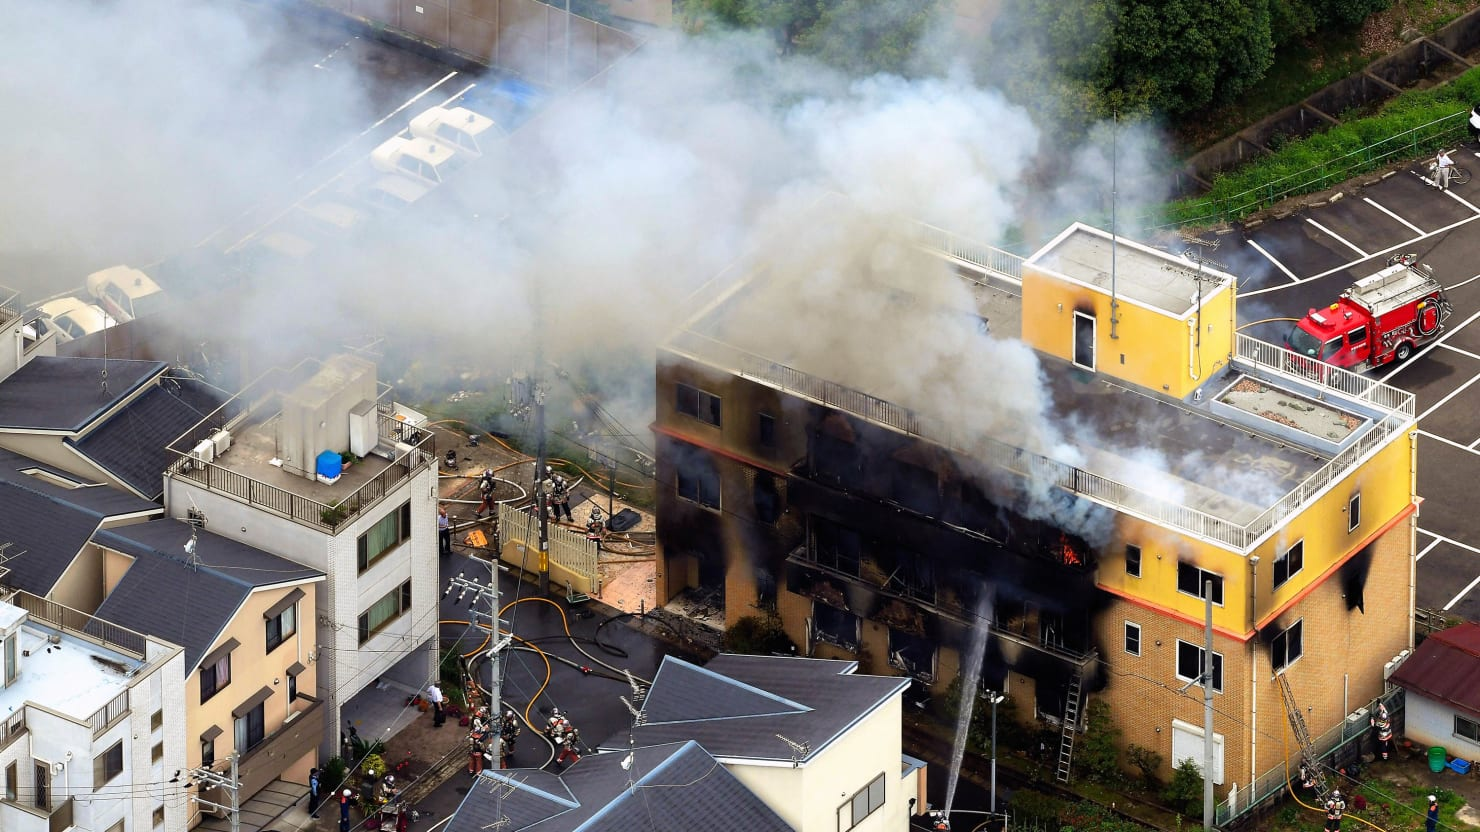 A Crazed Arsonist Just Killed 33 People at a Great Japanese Anime Studio